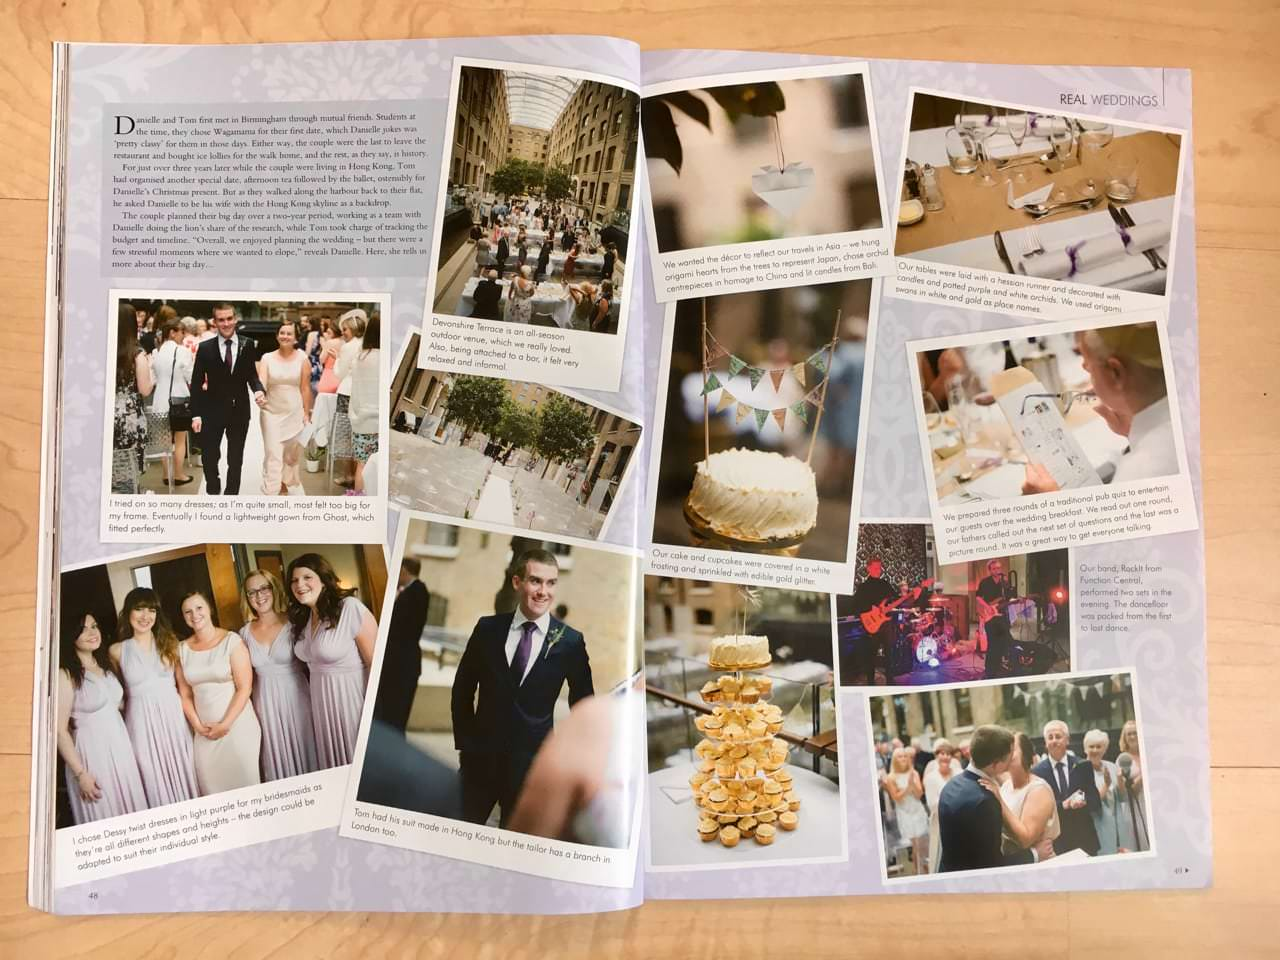 Photographs of wedding at Devonshire Place by Douglas Fry in magazine feature